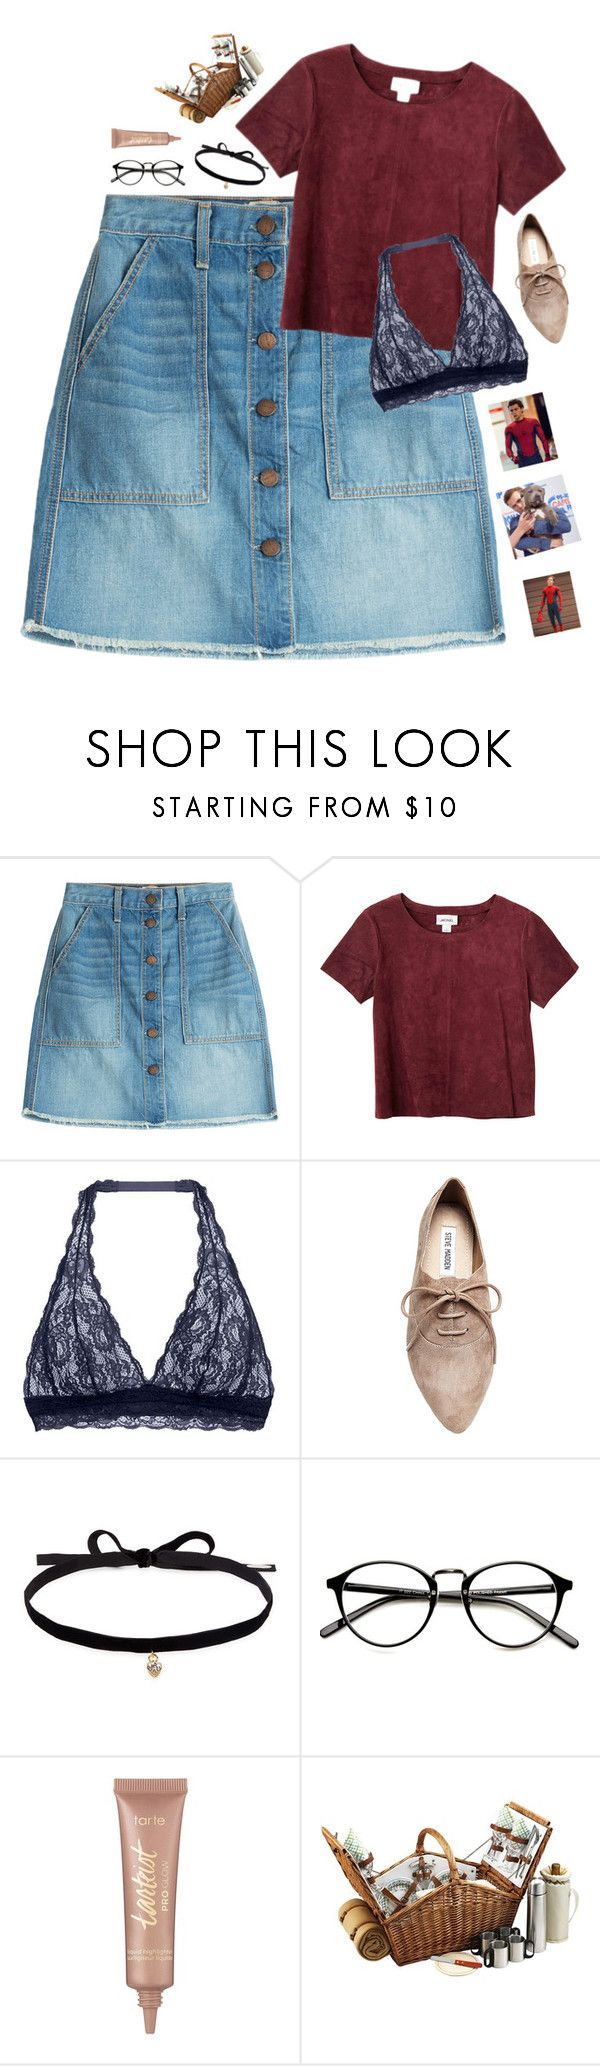 """""""Picnic with Peter Parker 🕷🕸/// rtd???"""" by simplylovelyruru ❤ liked on Polyvore featuring Current/Elliott, Monki, Cosabella, Steve Madden, Joomi Lim, tarte and Marvel"""